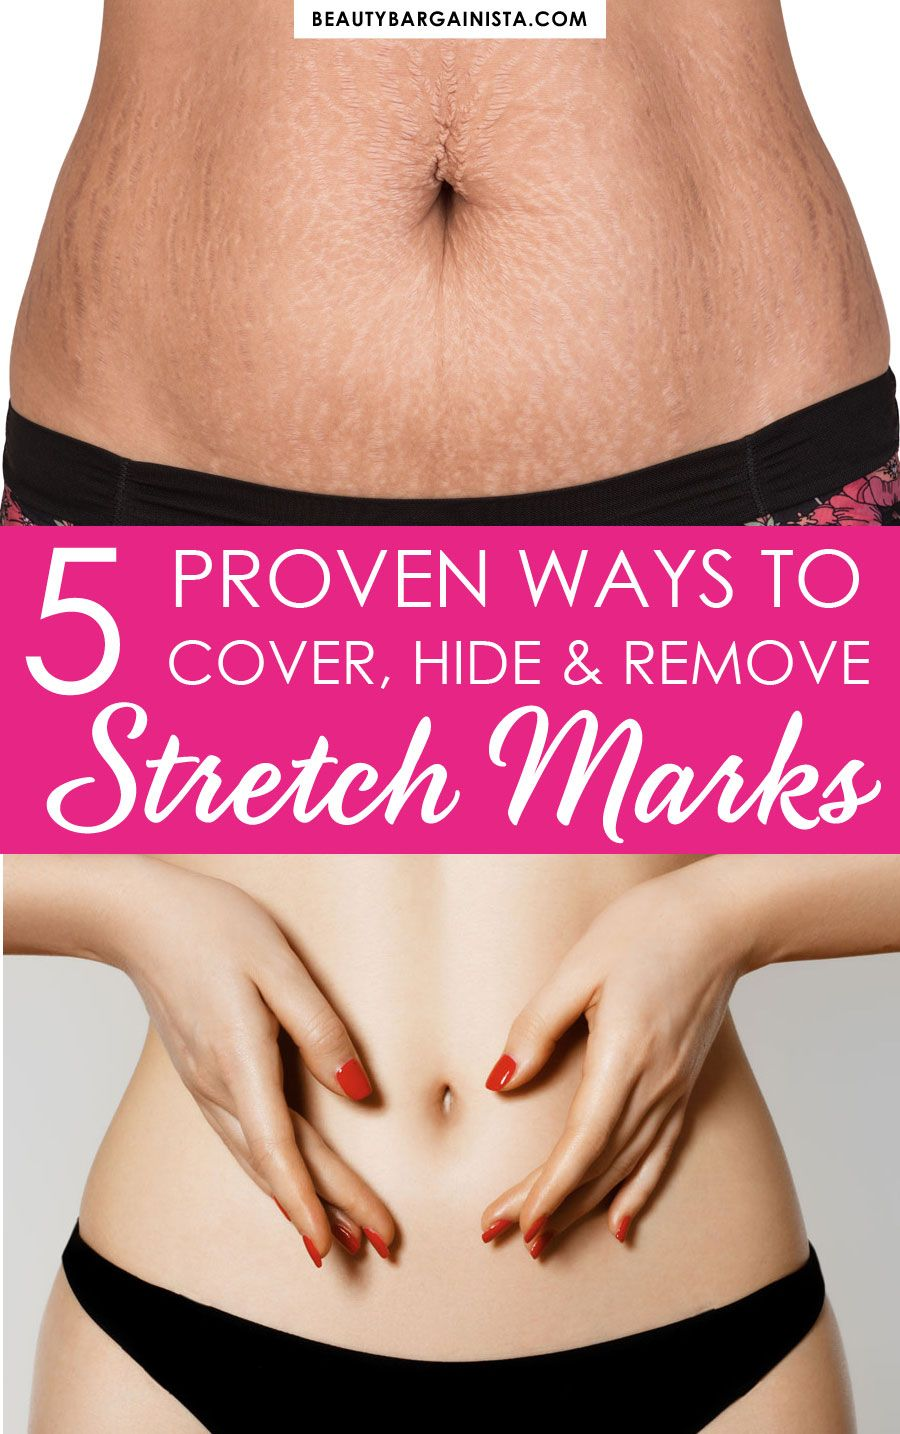 8a468cab8556af52ab5154441643251e - How To Get Rid Of Stretch Marks On Thighs Teenager